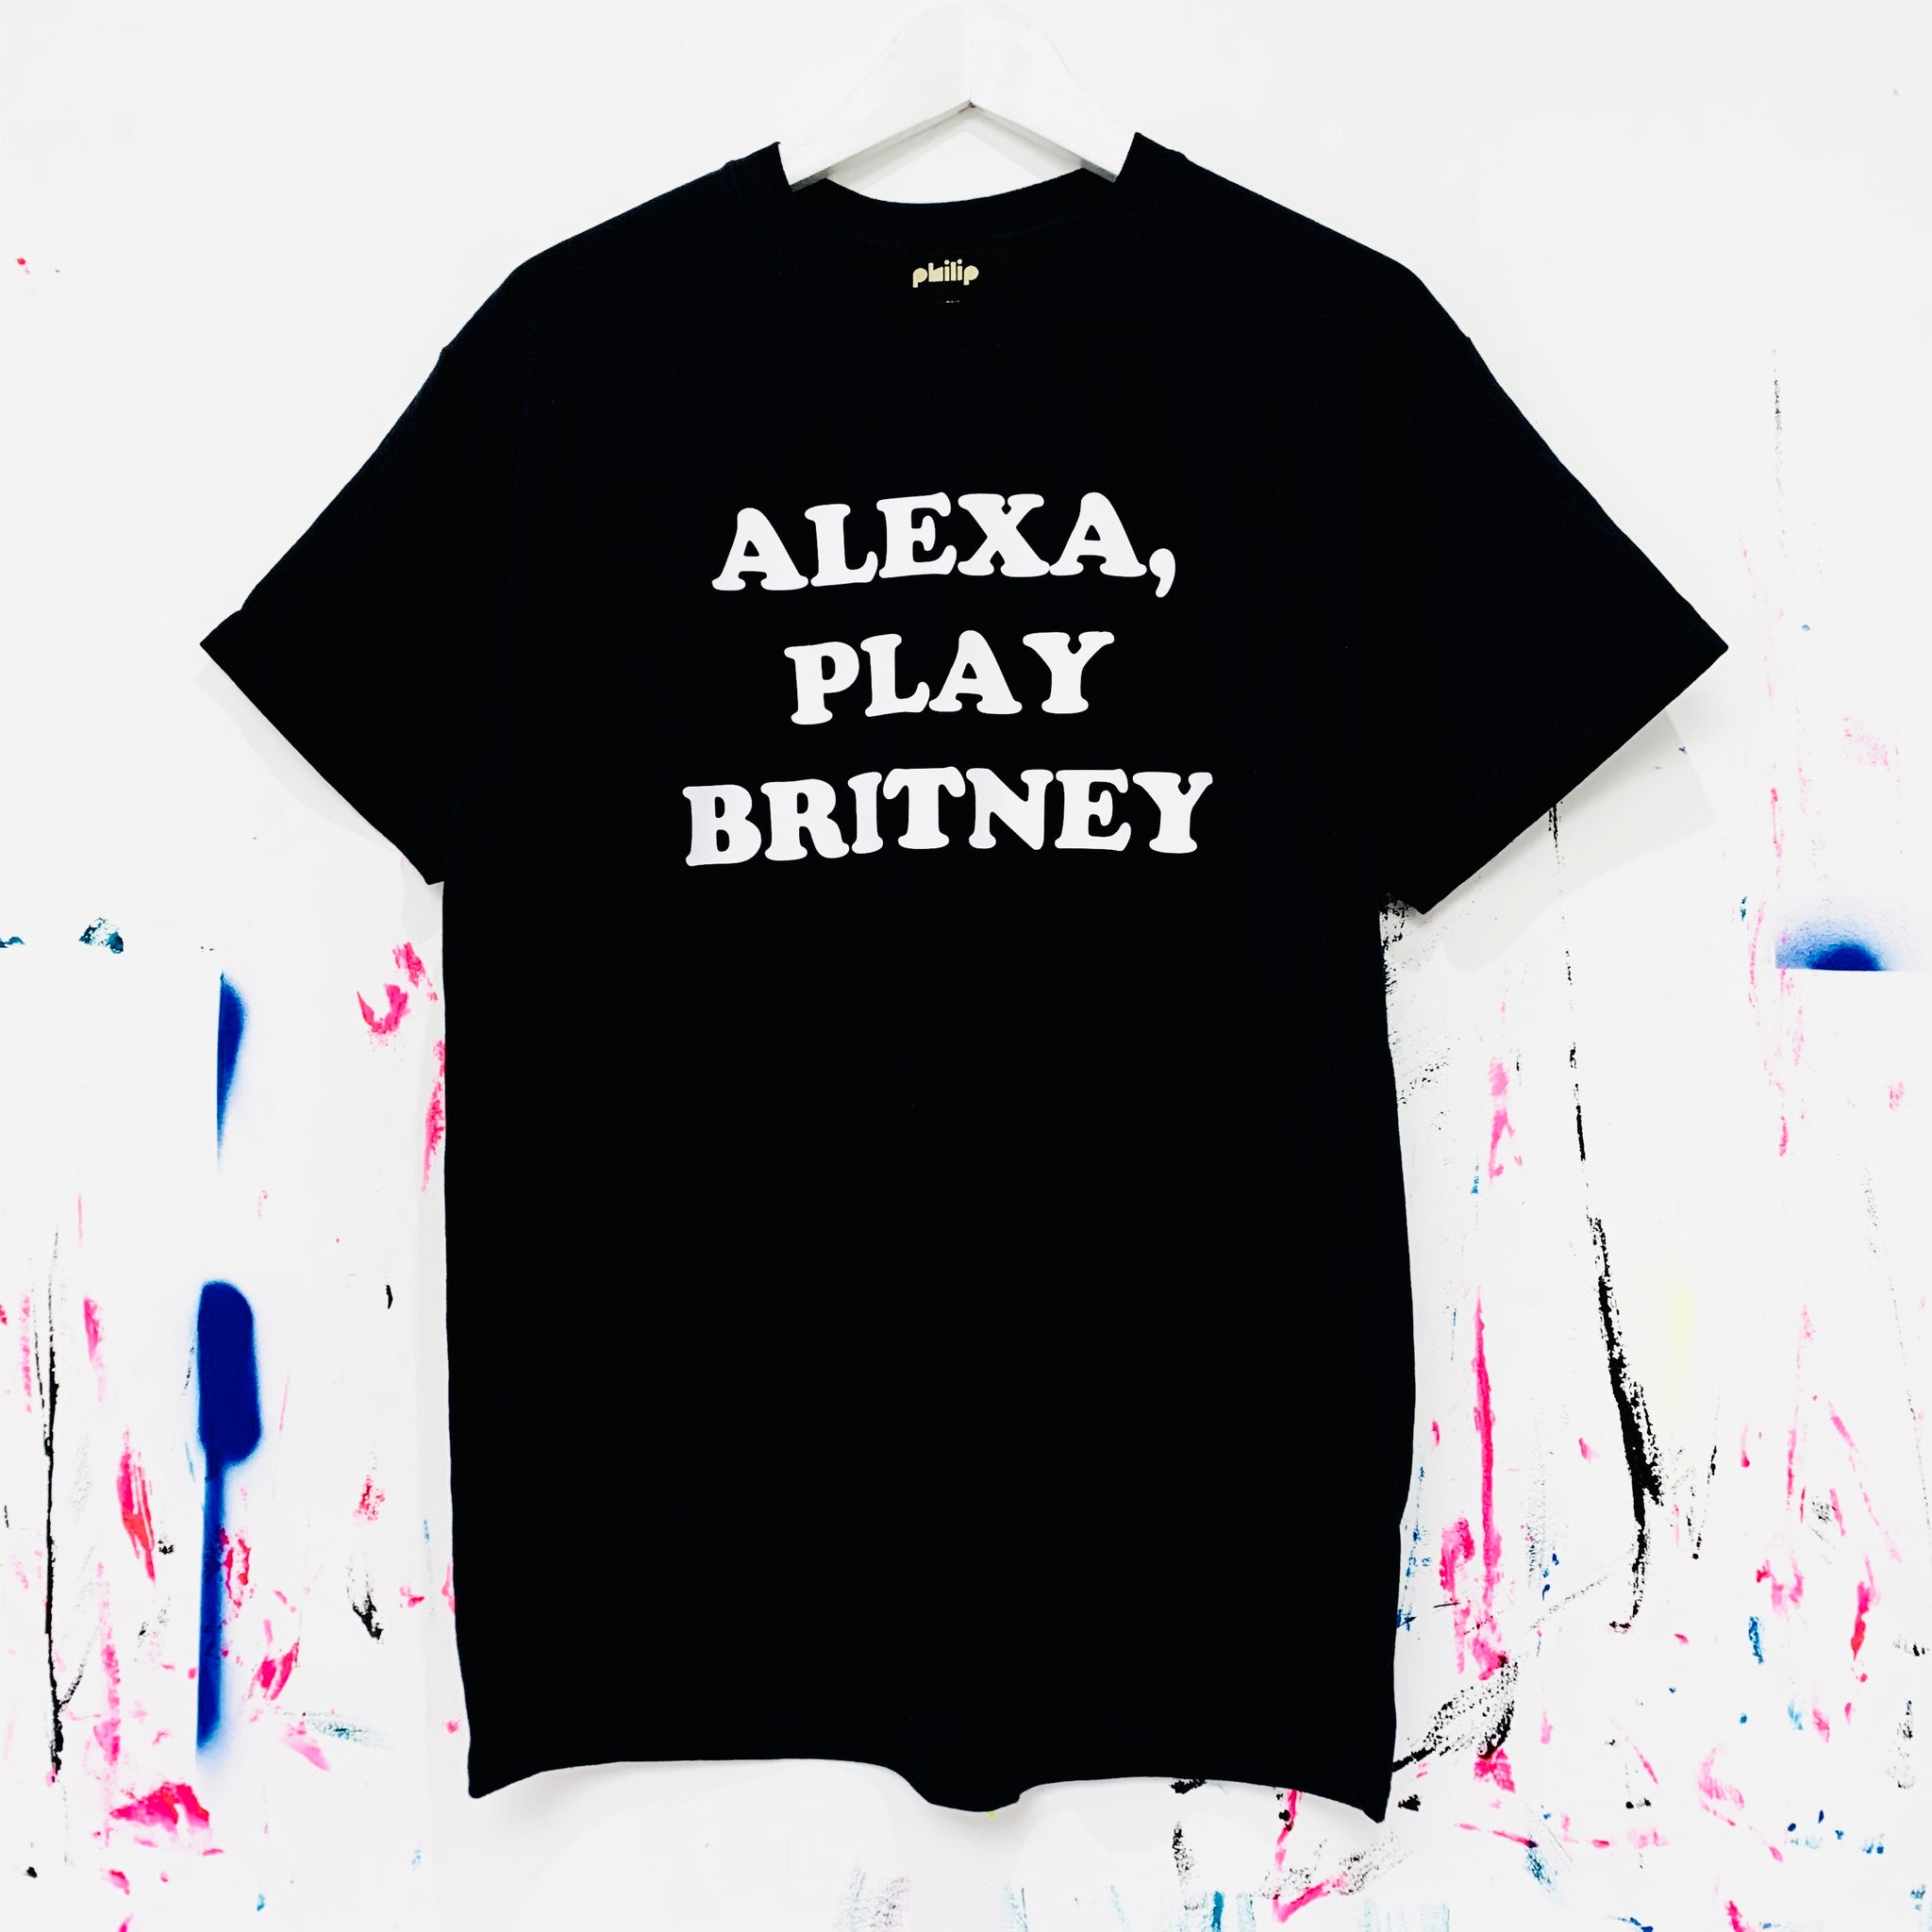 ALEXA, PLAY BRITNEY T-Shirt